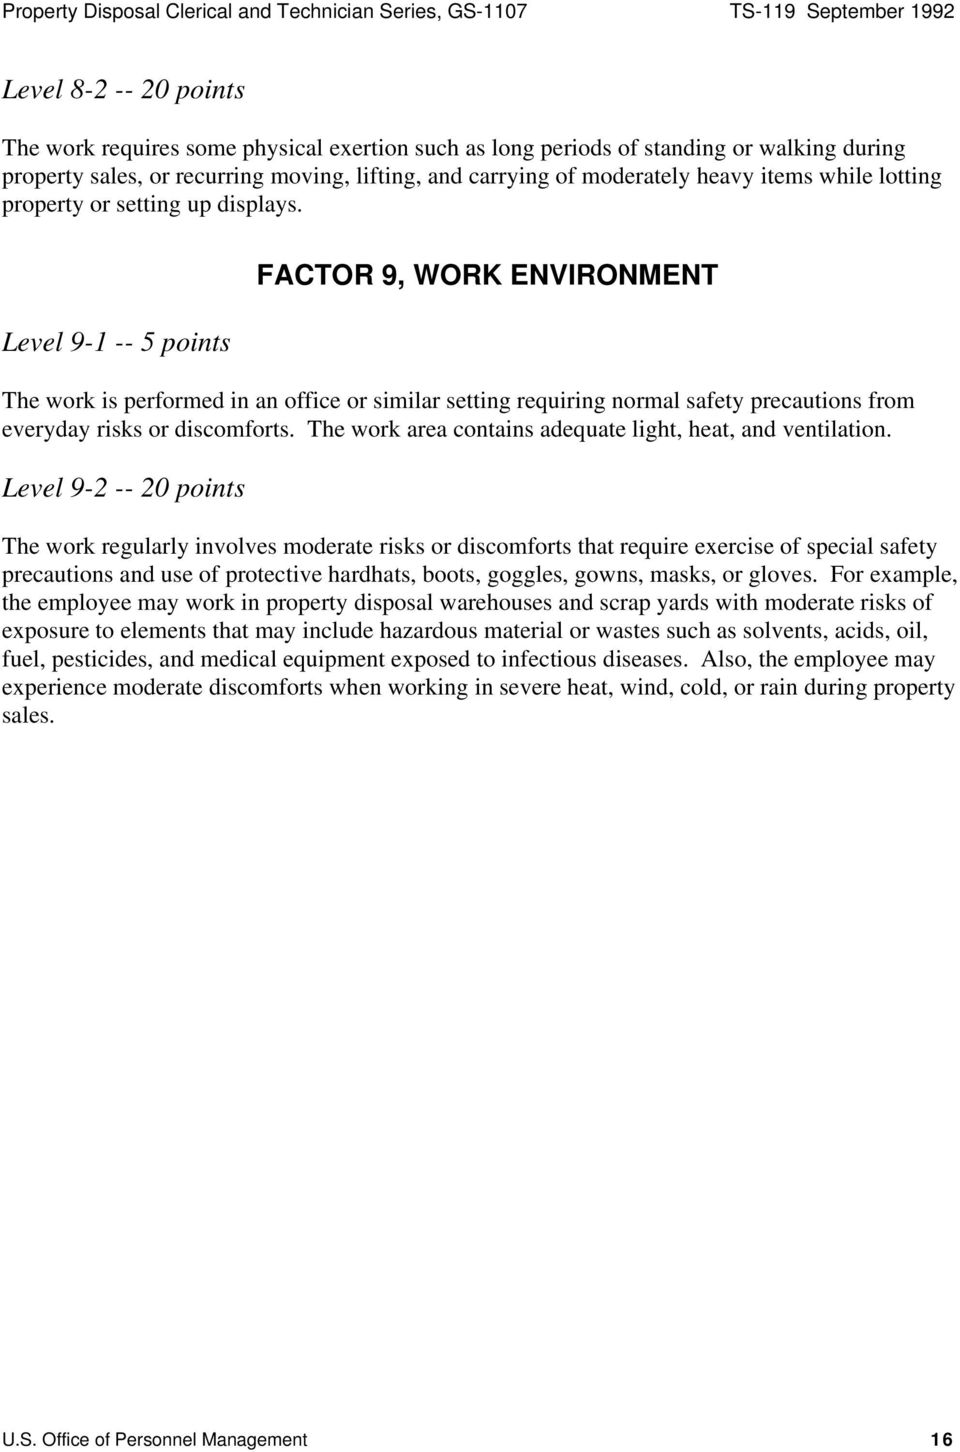 Level 9-1 -- 5 points FACTOR 9, WORK ENVIRONMENT The work is performed in an office or similar setting requiring normal safety precautions from everyday risks or discomforts.